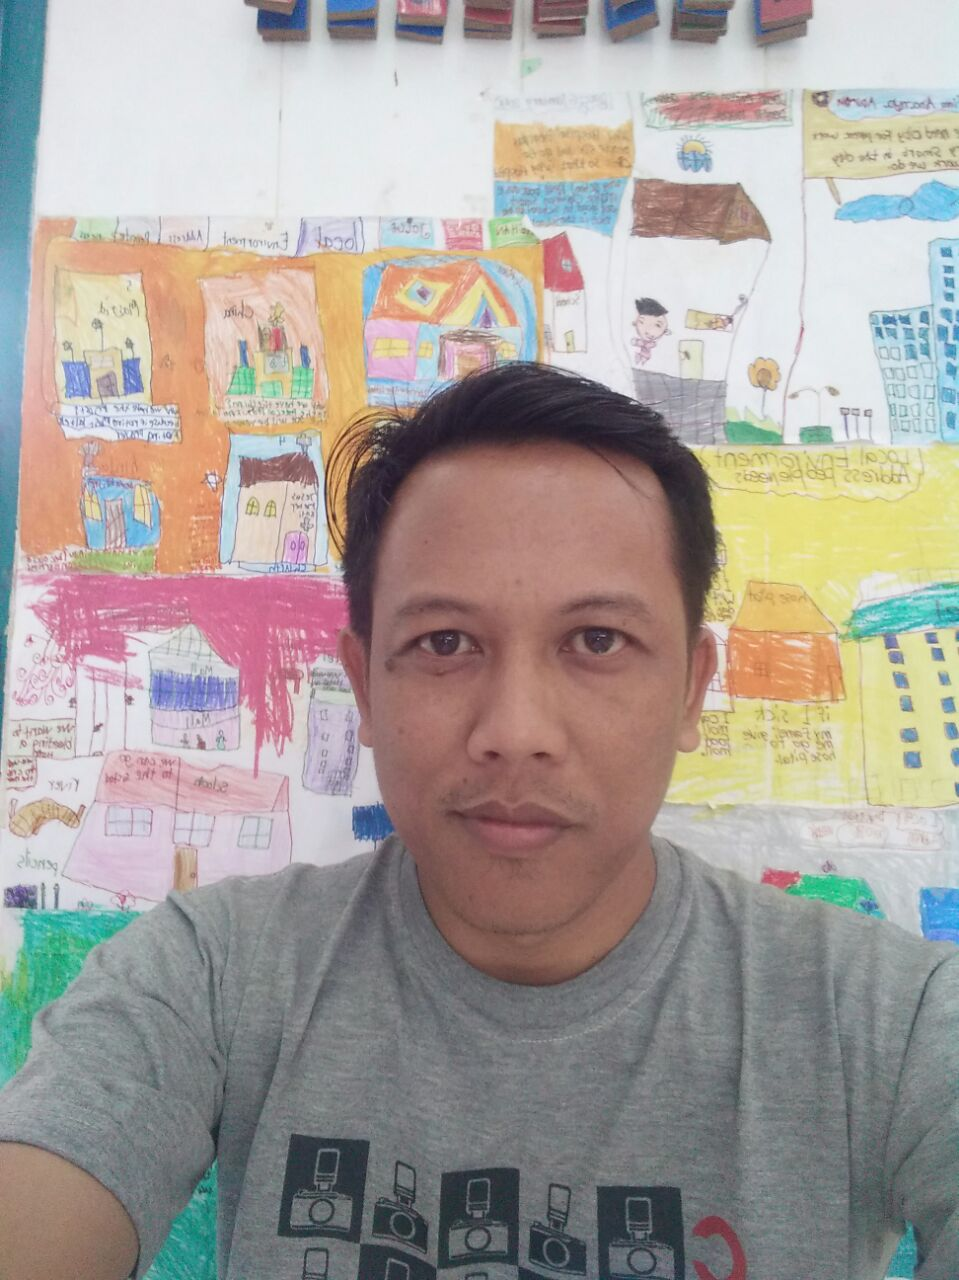 Henry Putra is a wood dispatcher based in the town of Kerinci, Riau